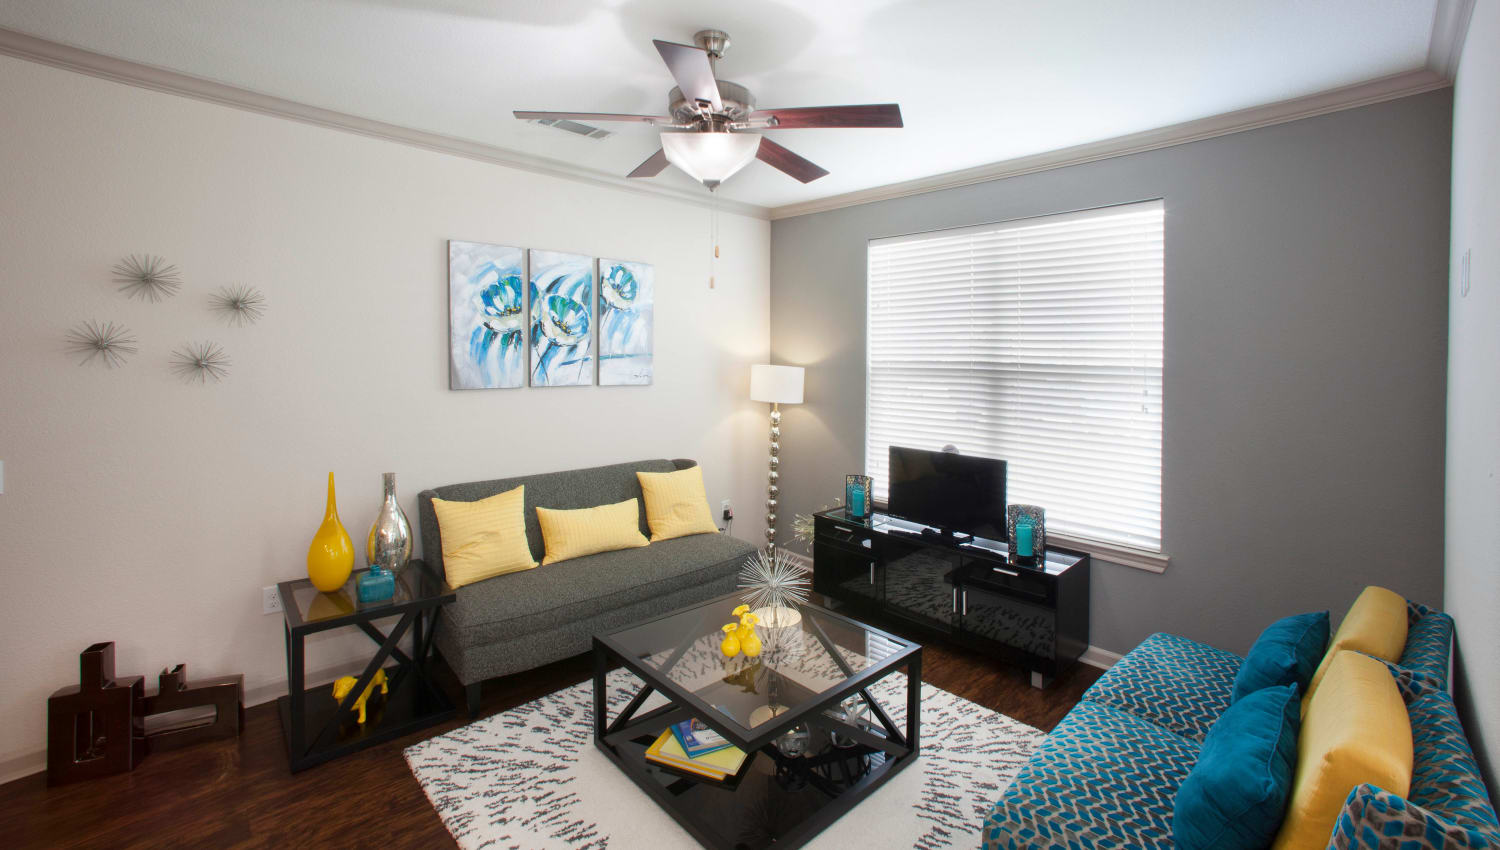 Well-furnished living area with a large bay window in a model apartment at Olympus Katy Ranch in Katy, Texas